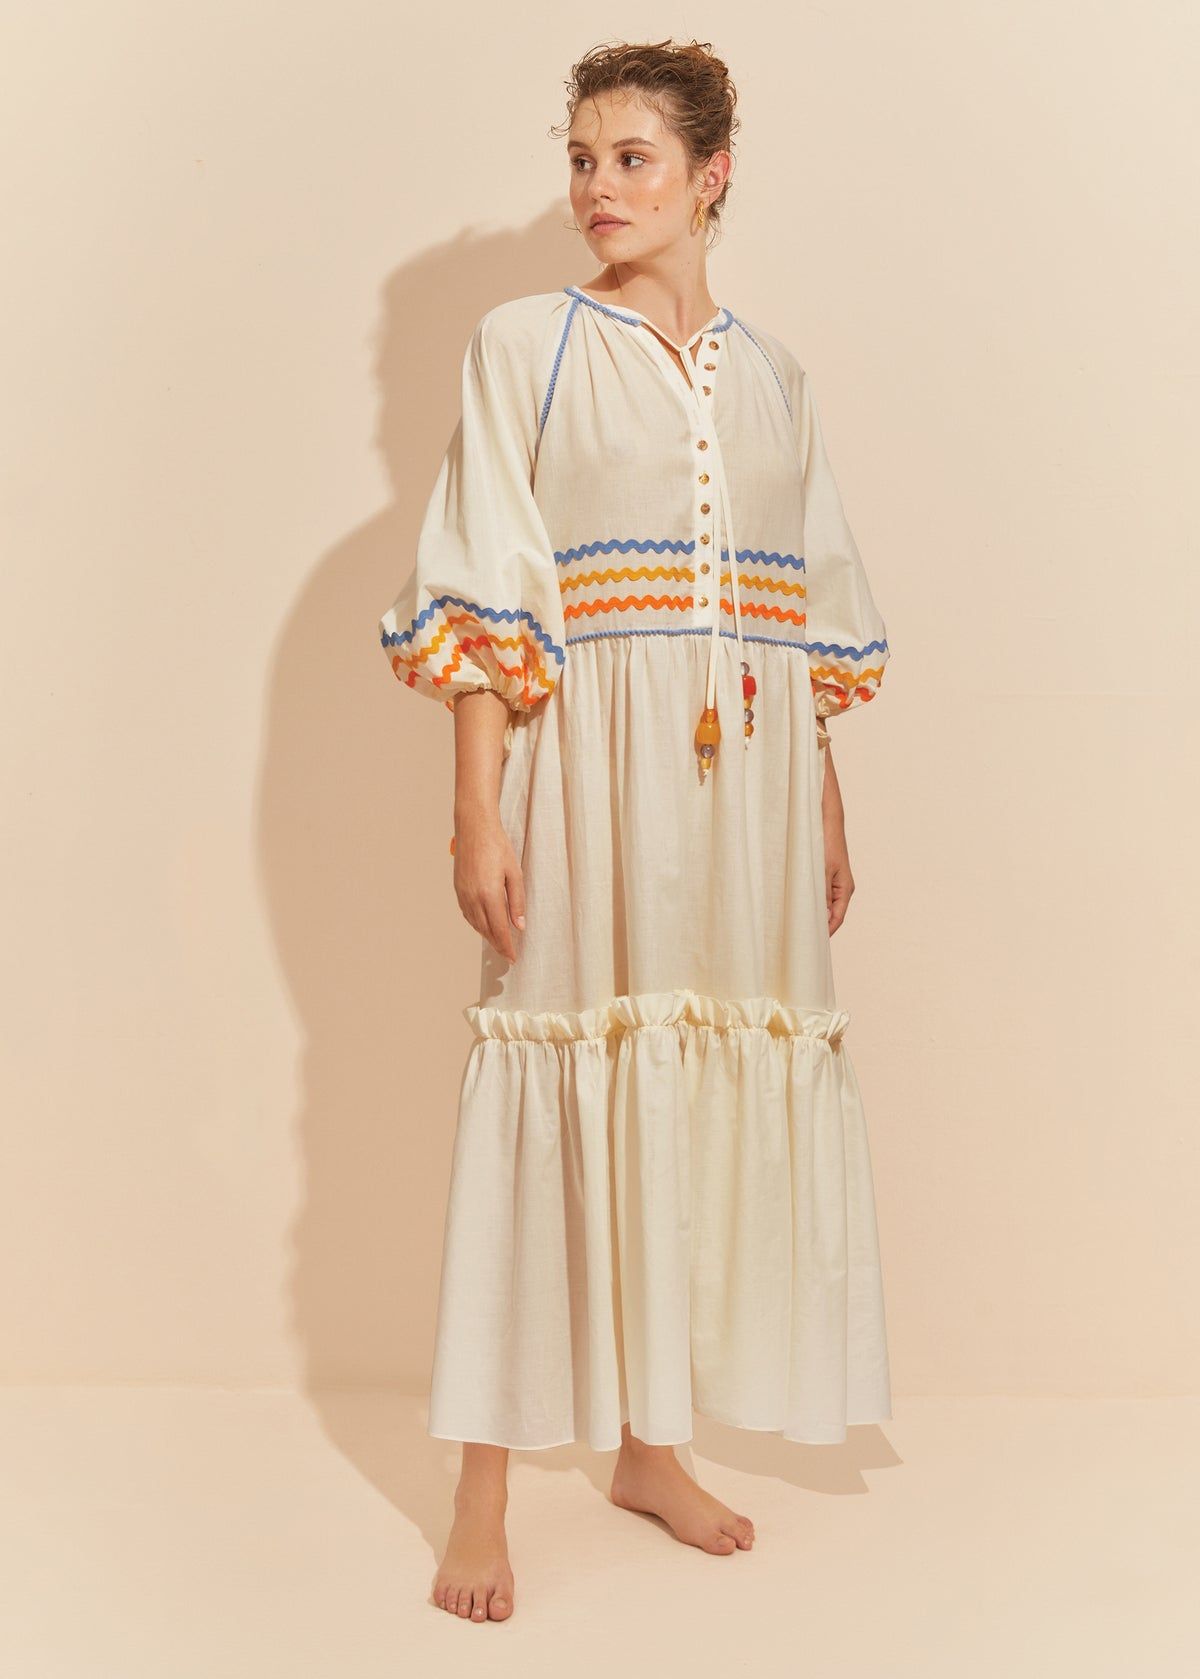 The Gypsy Monroe Dress - MILK